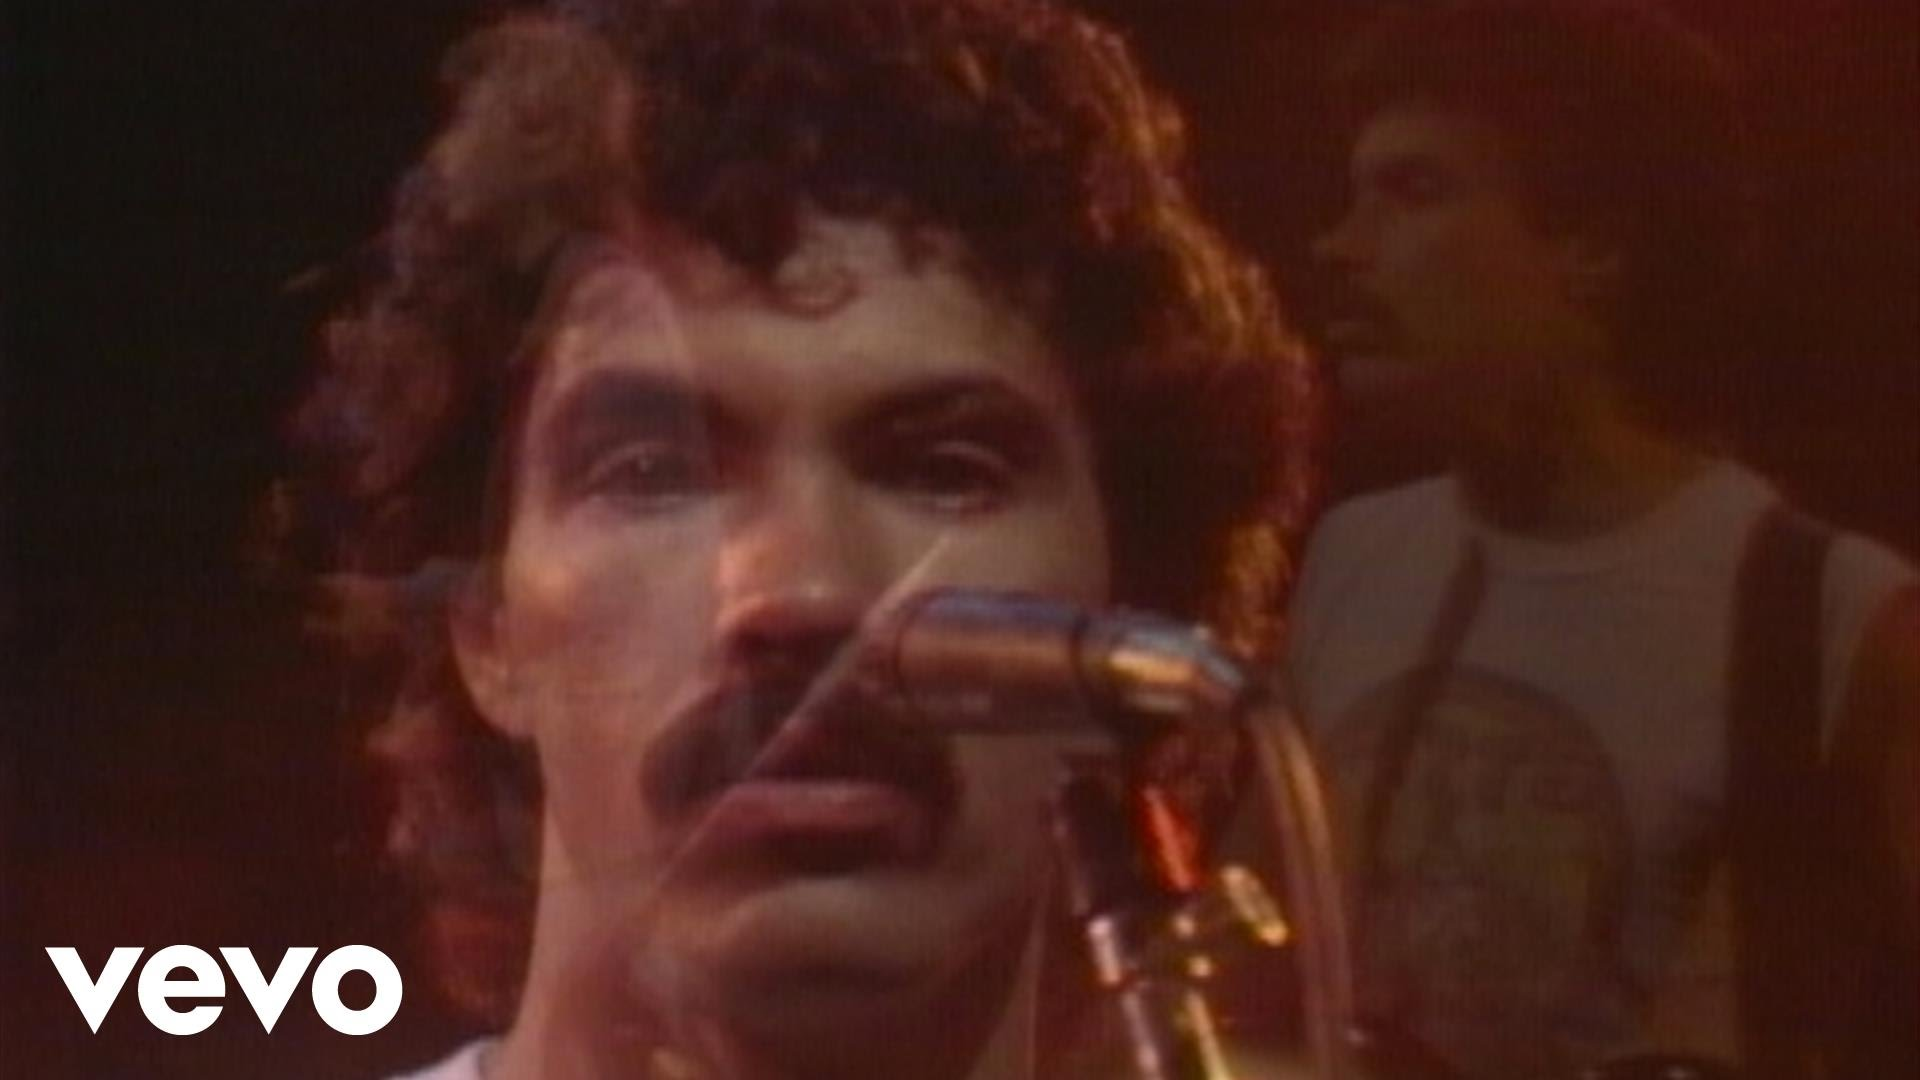 Hall Oates Youve Lost That Lovin Feelin Video 1980 Imdb